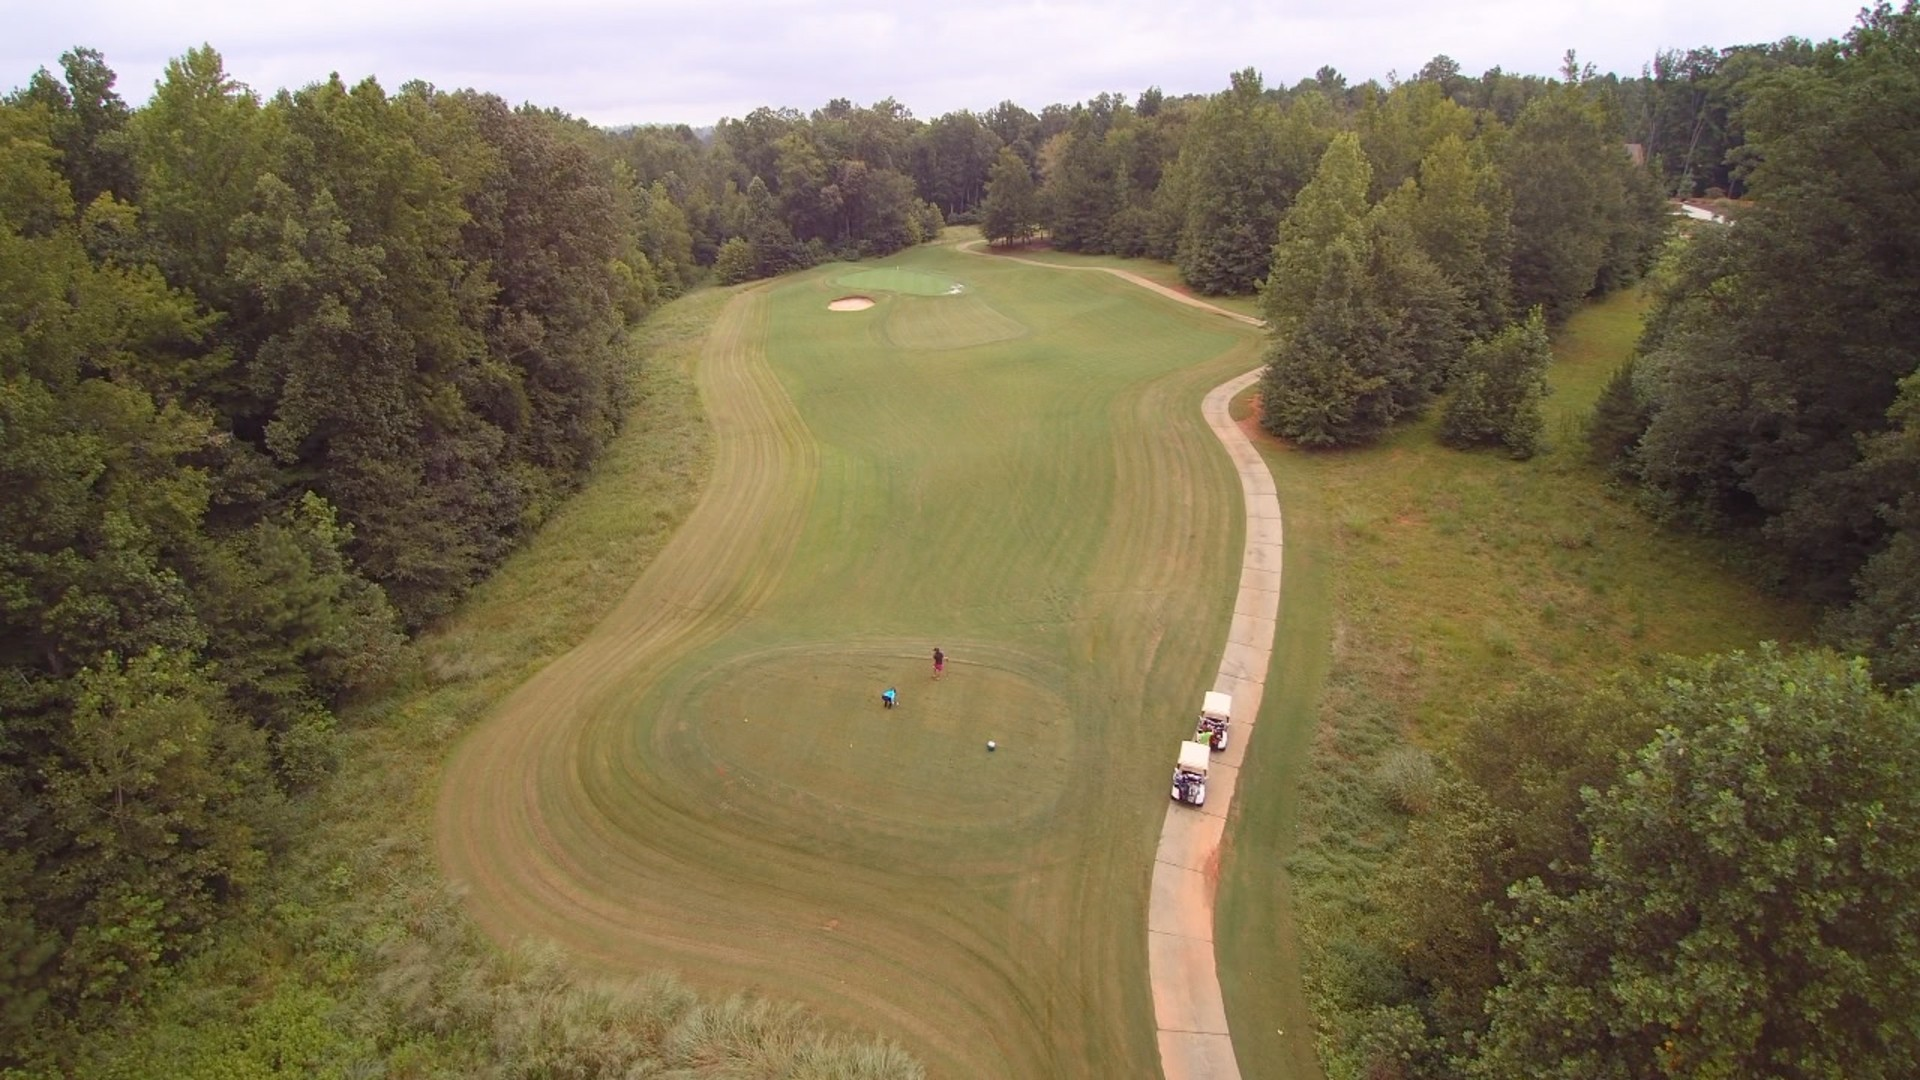 Drone_Golf_2_TraditionsO00120171103165900